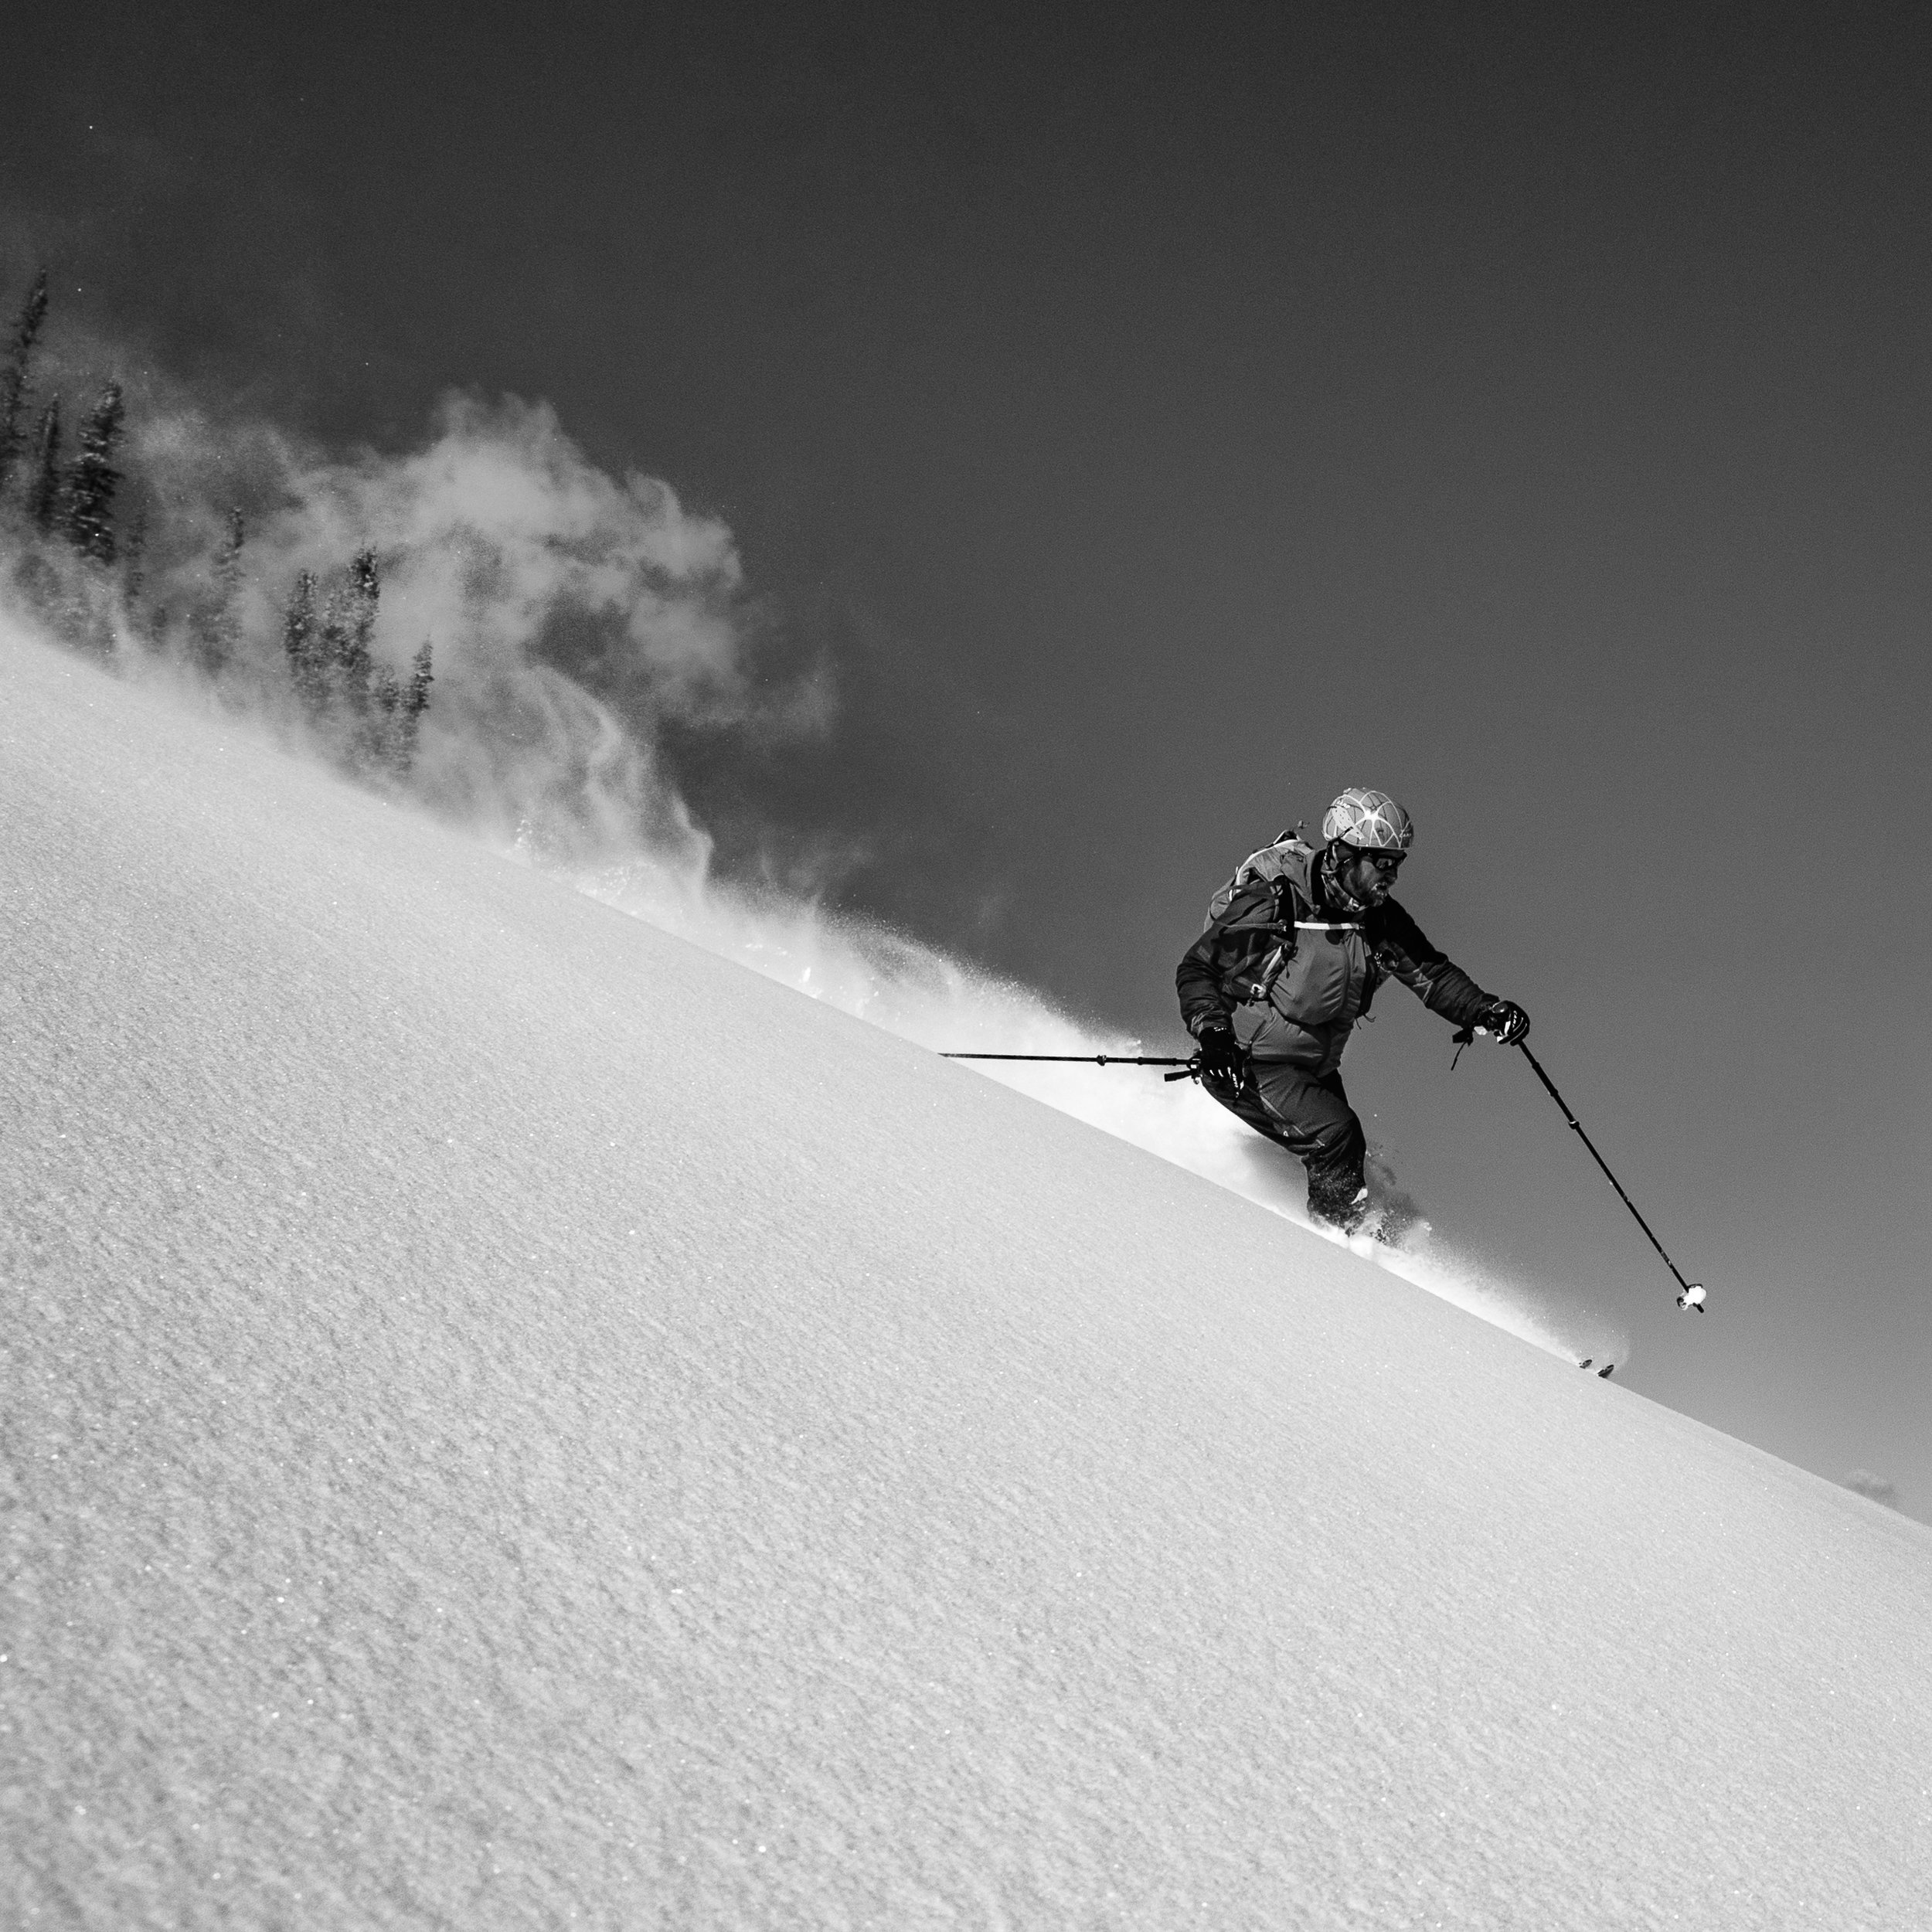 This image is as much about the skier as it is about the powder dragon. Lets just say Paddy slayed the dragon.